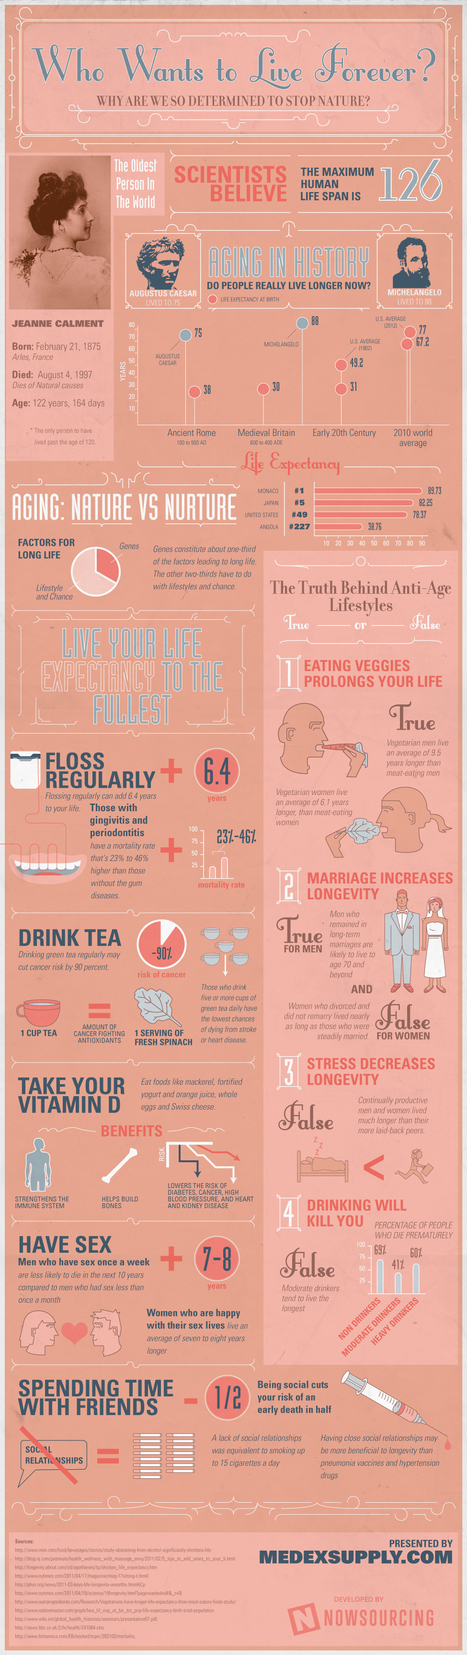 How To: Extend Your Lifespan & Live A Longer Life [Infographic] | Digital-News on Scoop.it today | Scoop.it